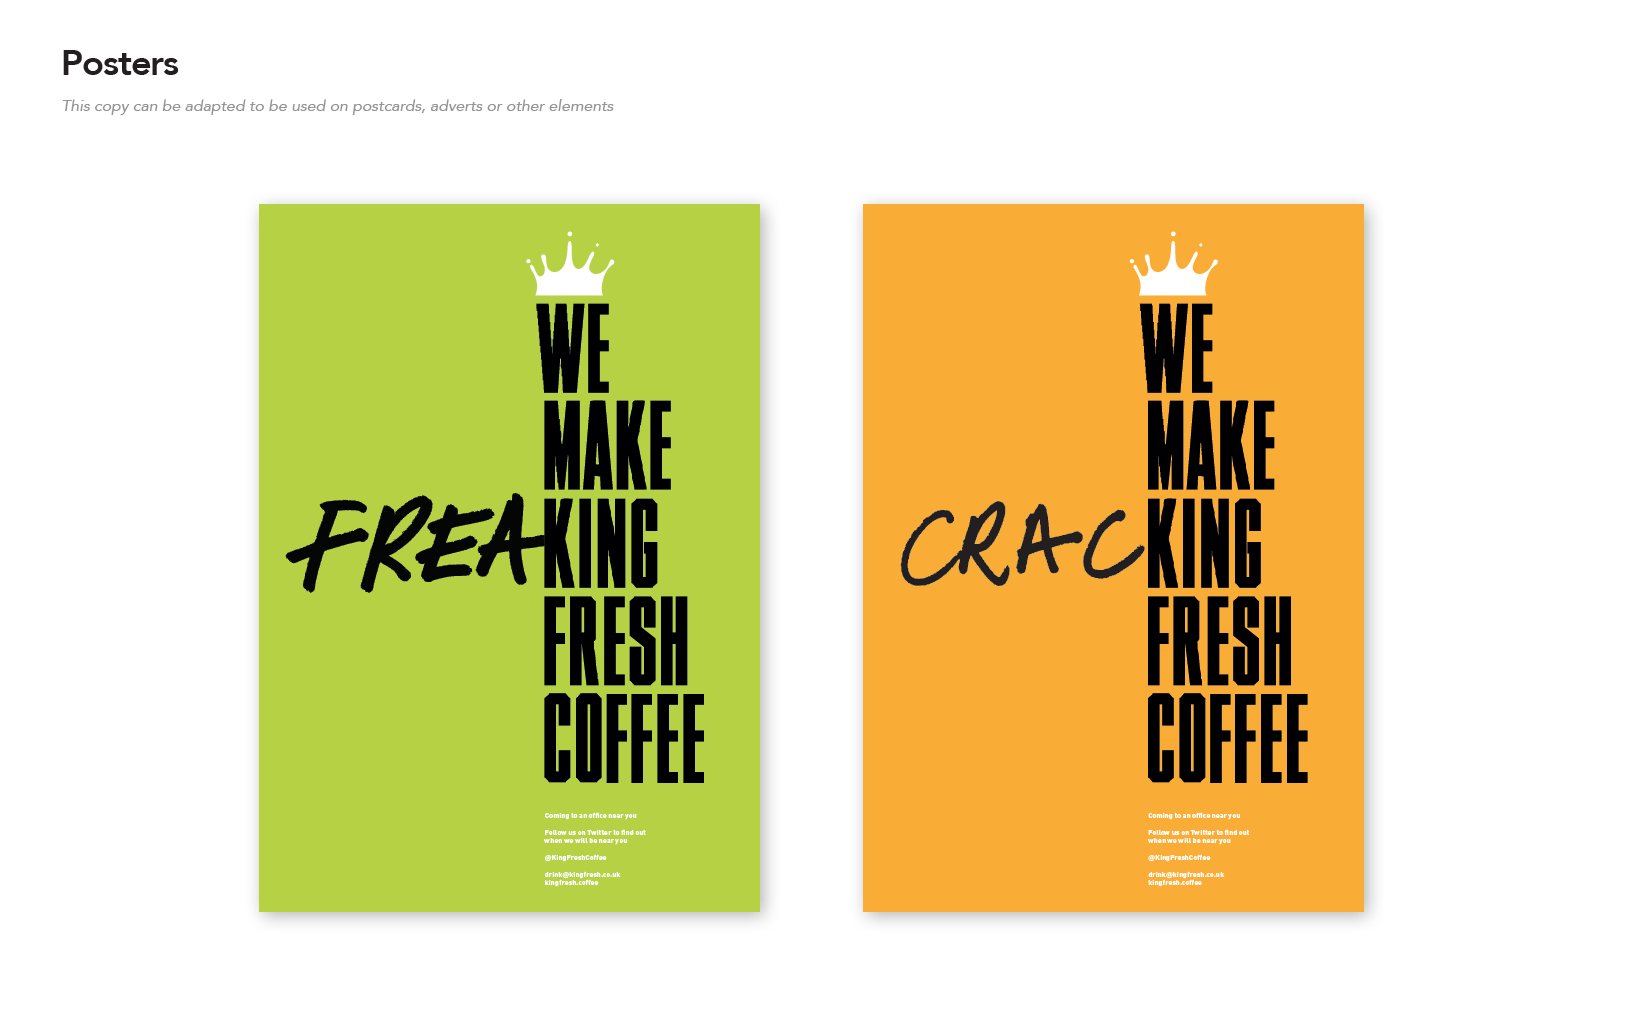 King Fresh Coffee 8